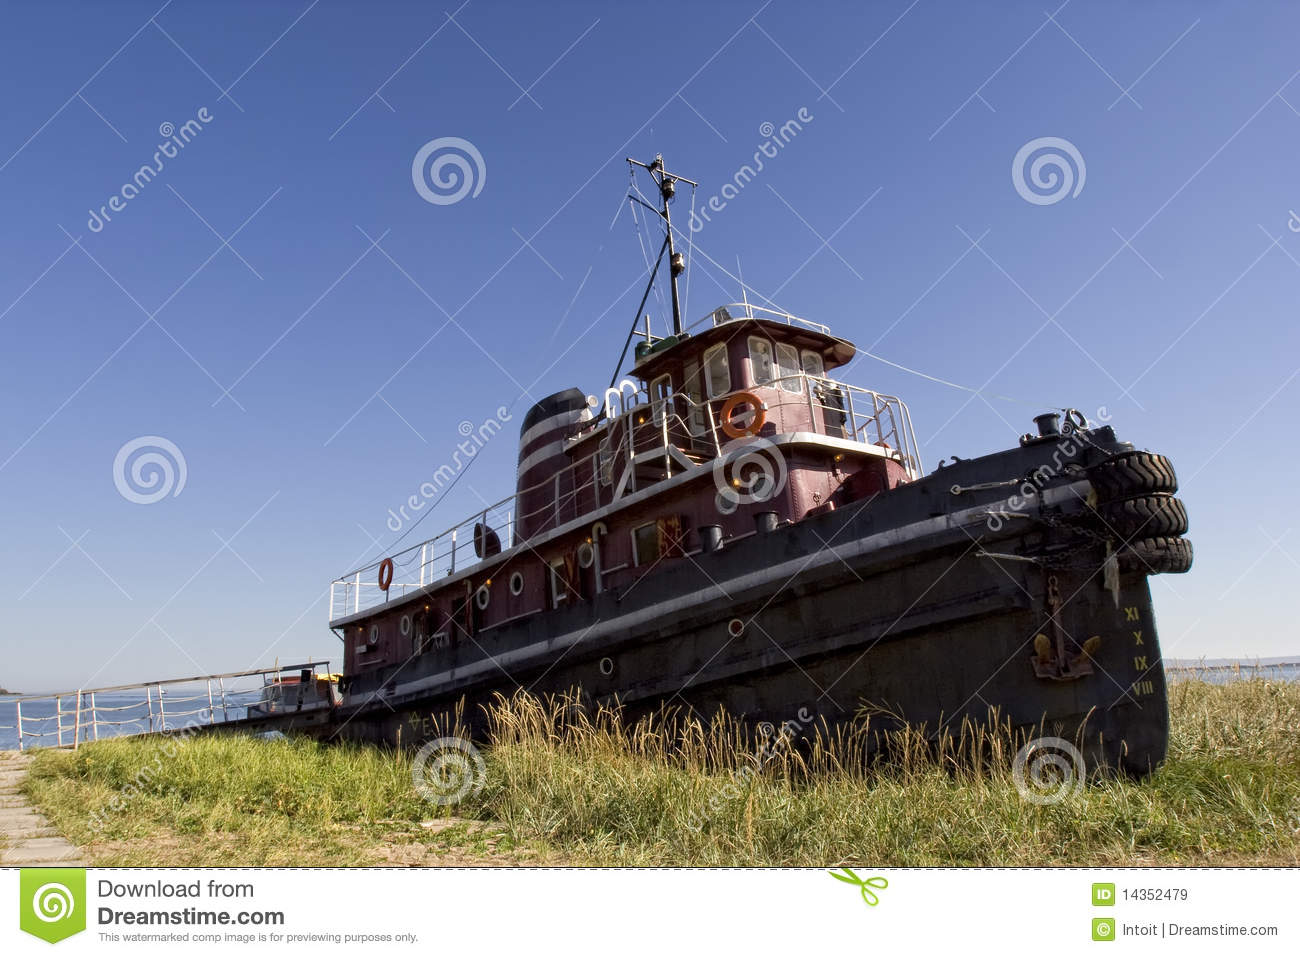 The old tug boat that put in years of service is now just sitting on ...